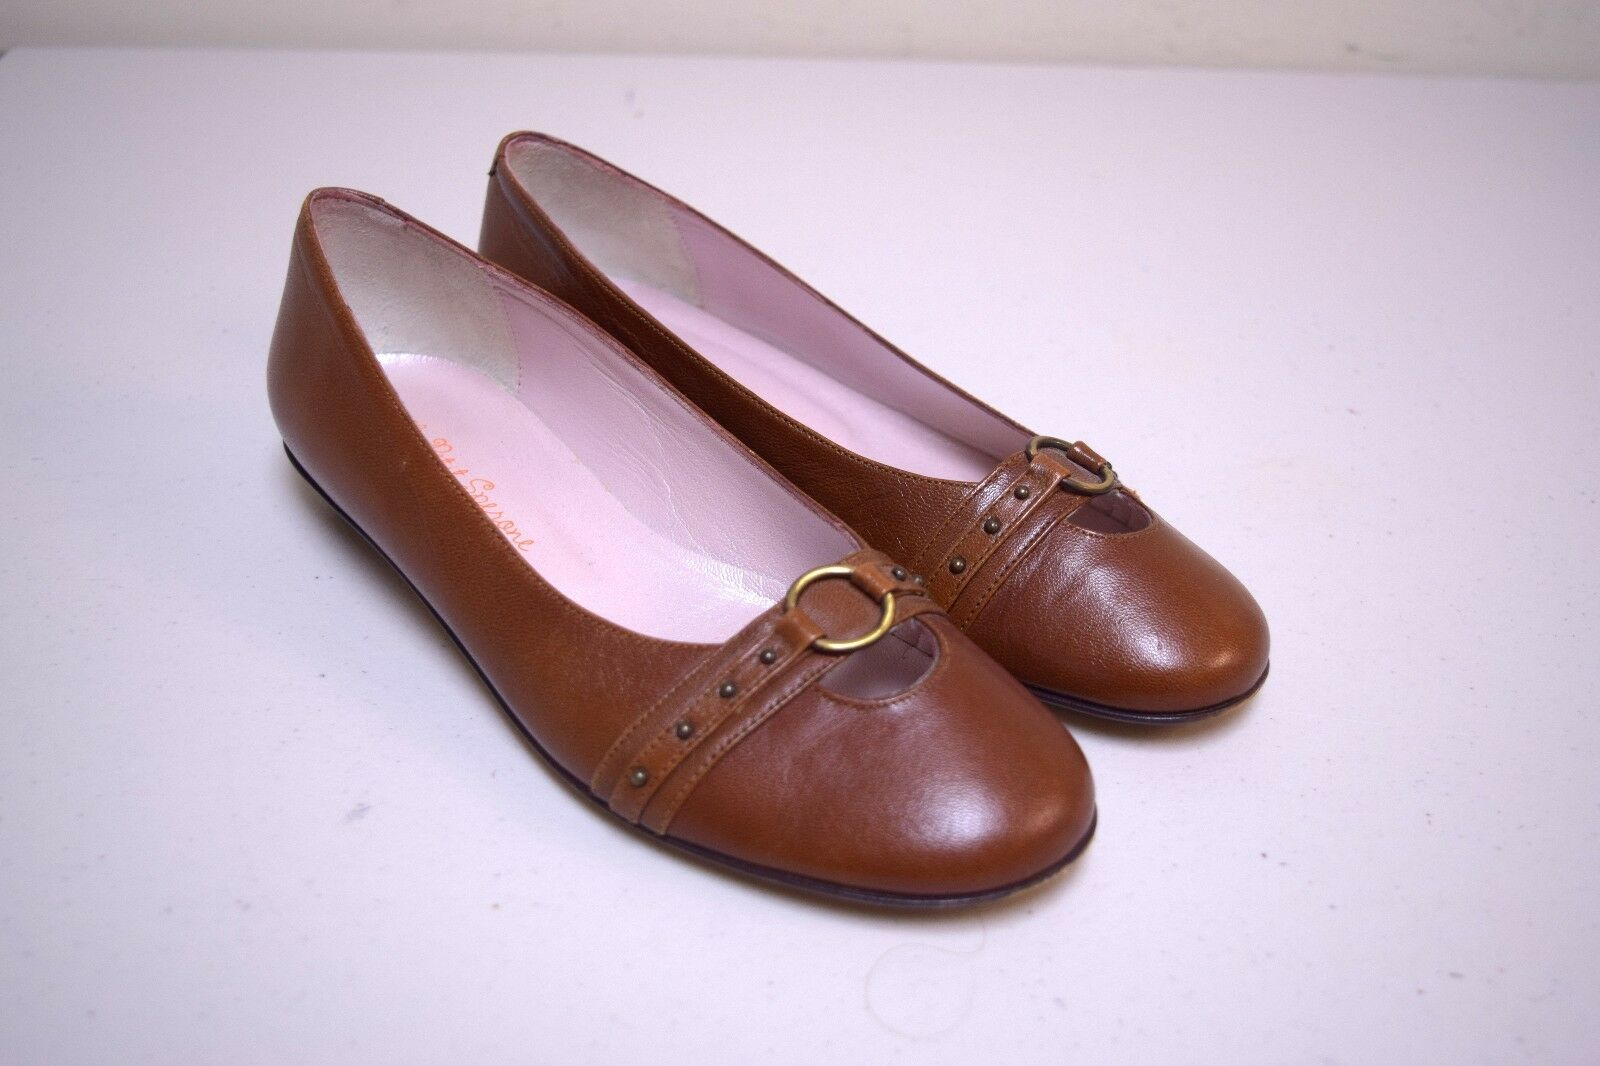 Le petit Sperone sacages marron écumeur Ballerines made in portugal taille 37 m